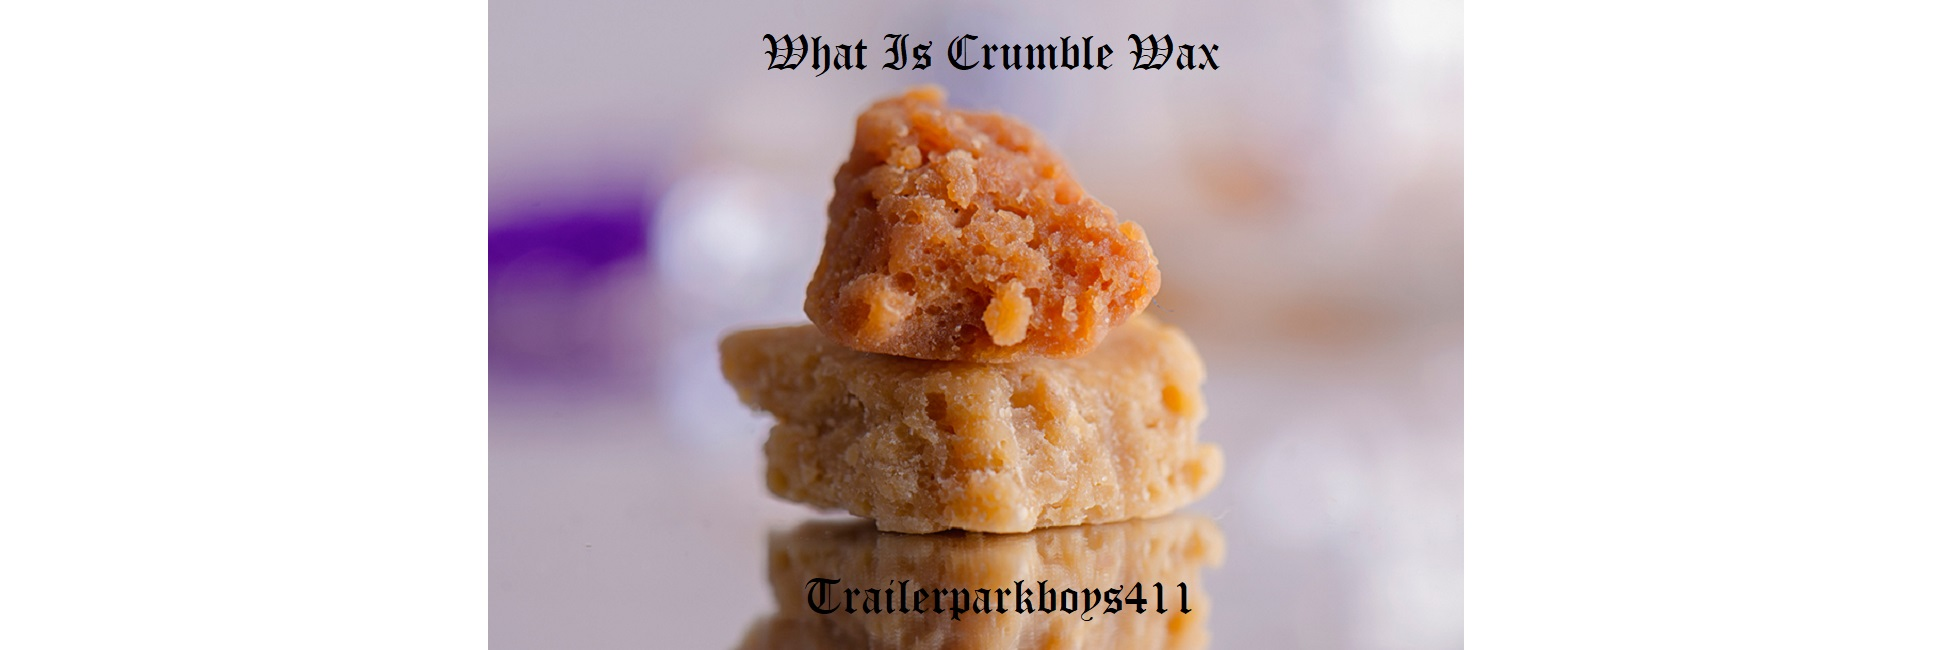 What Is Crumble Wax